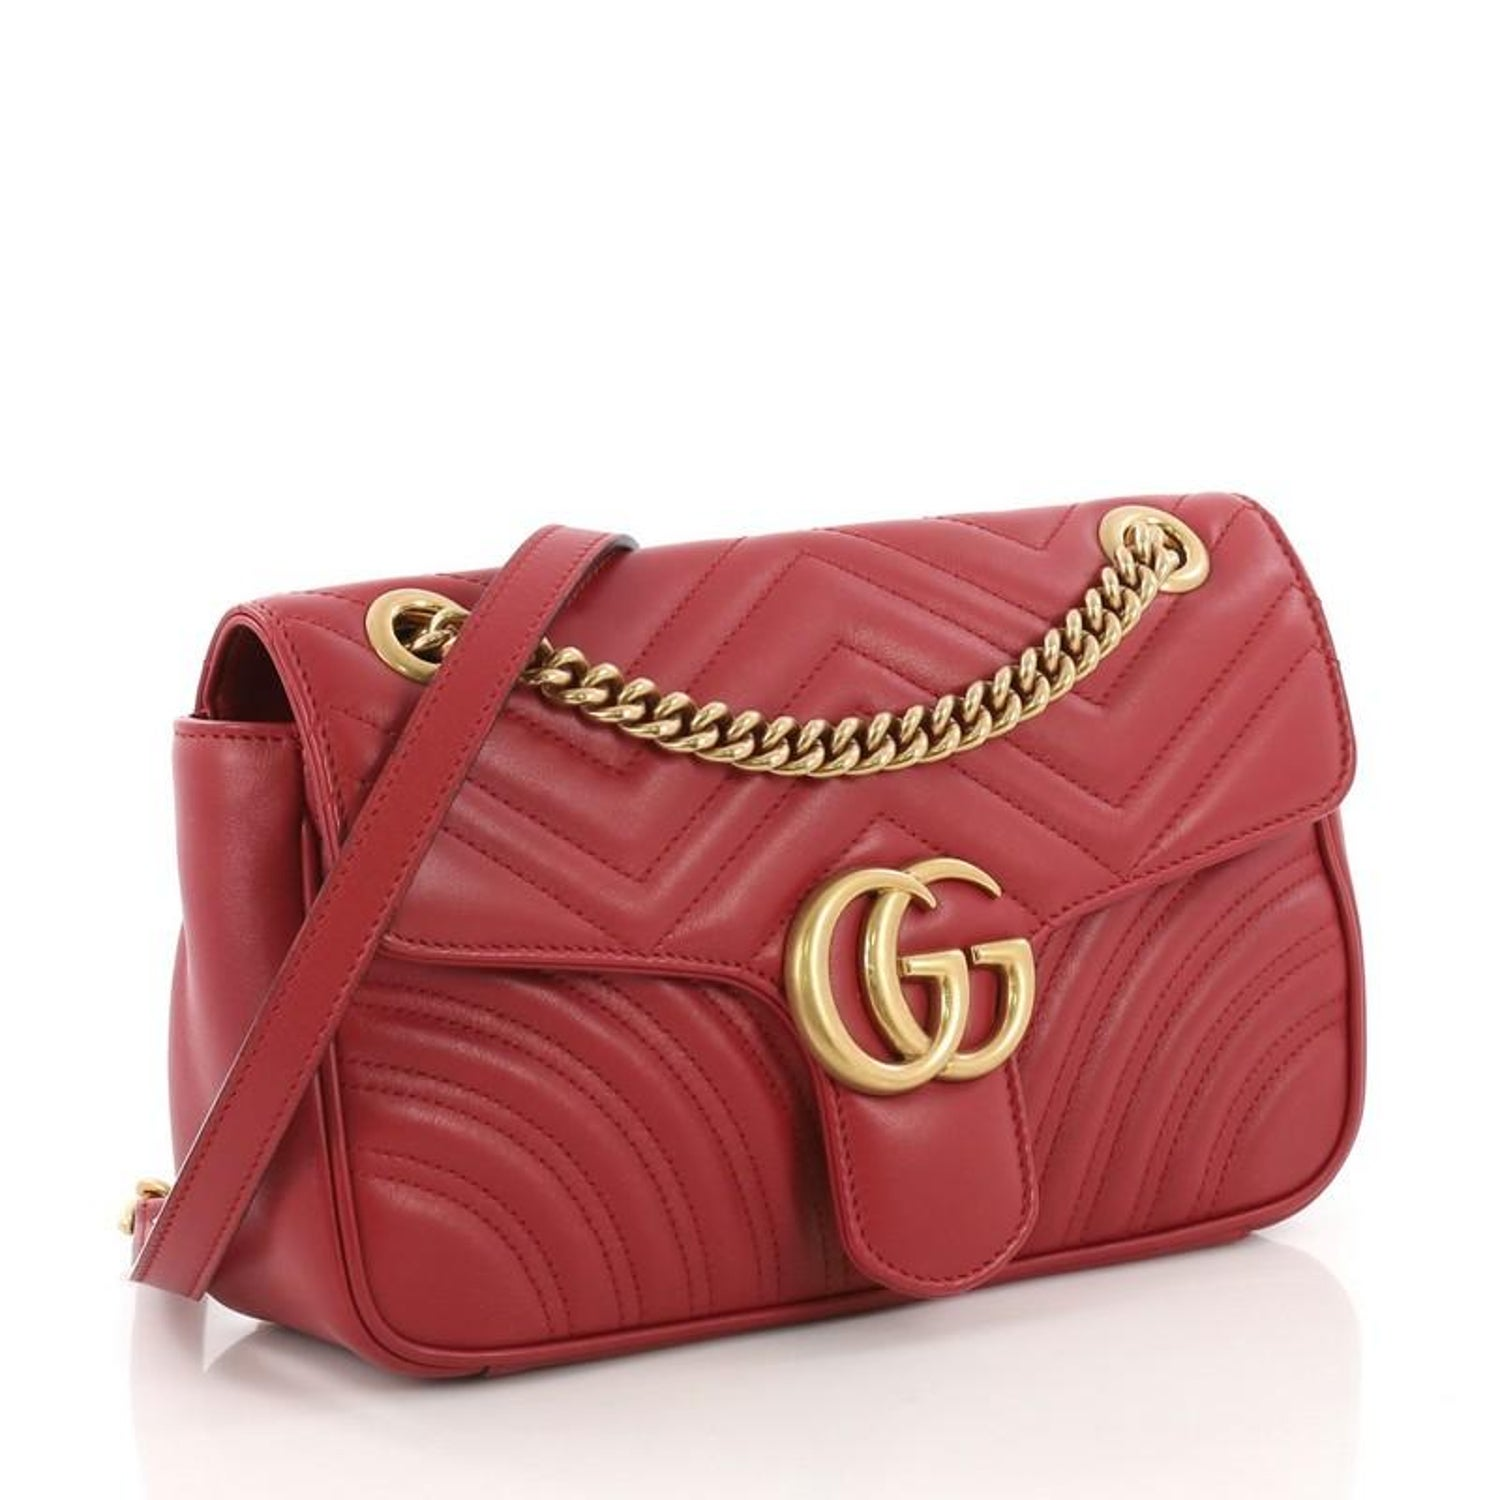 37af17e4f Gucci GG Marmont Flap Bag Matelasse Leather Small For Sale at 1stdibs